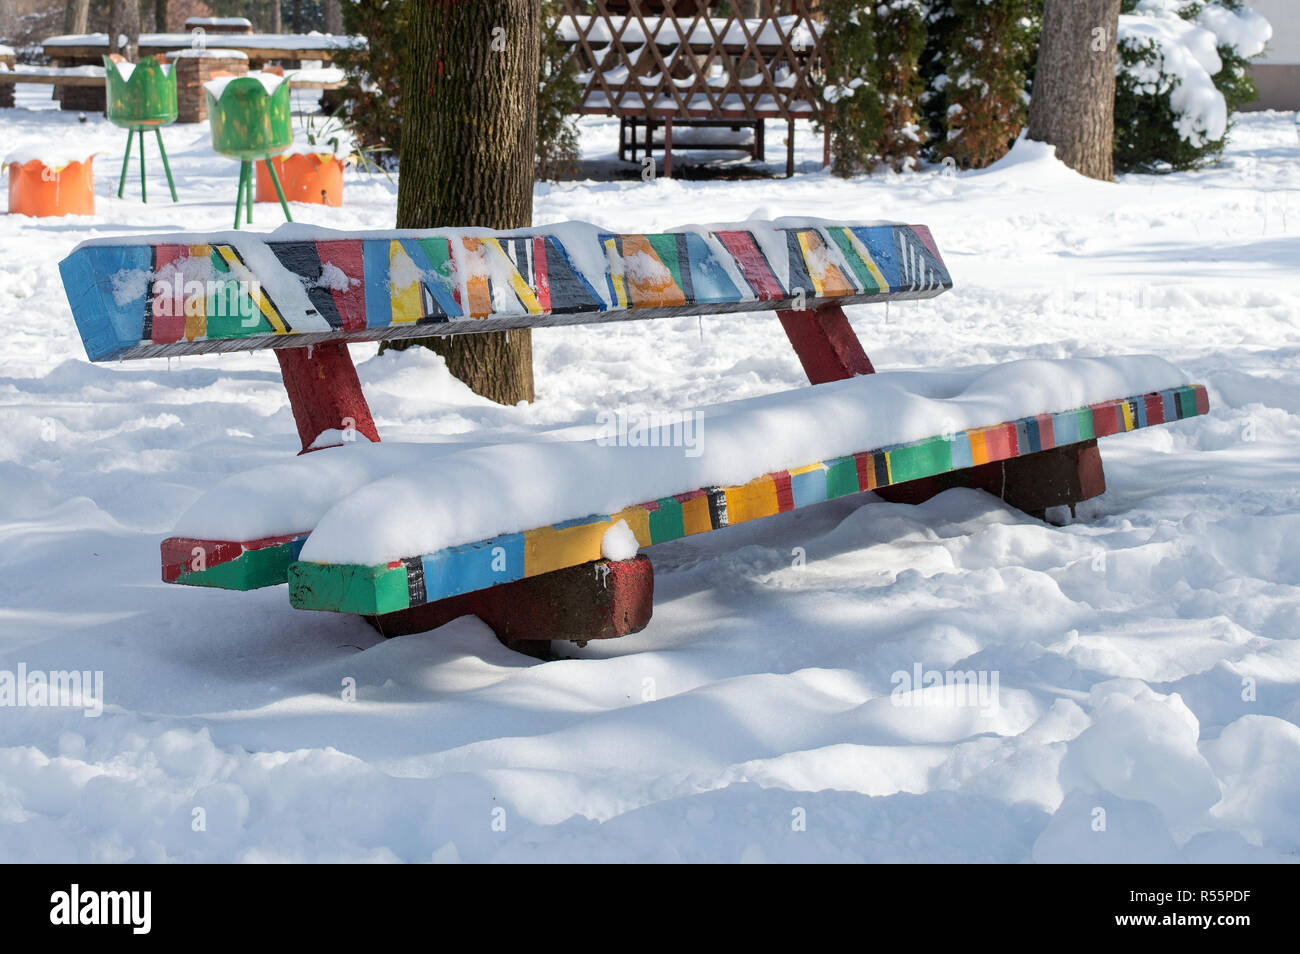 Idyllic scene of winter day - Stock Image